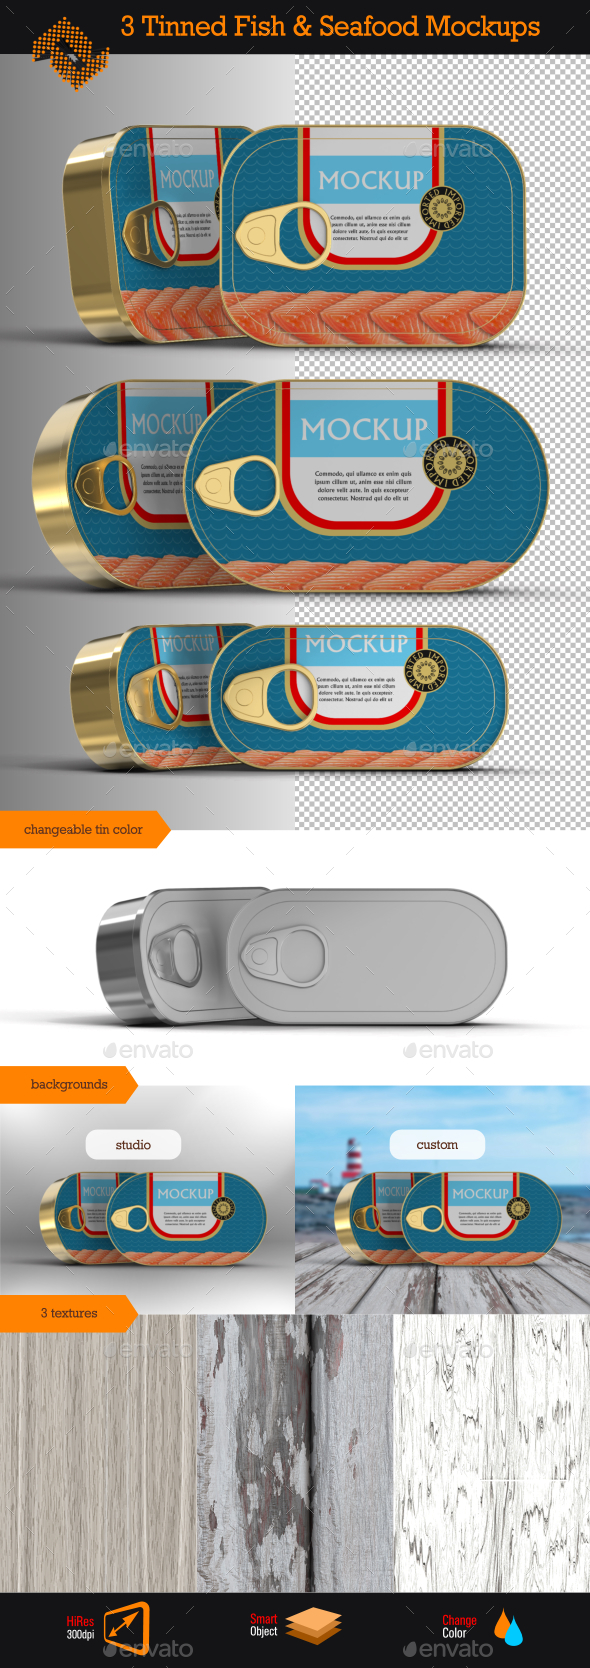 Tinned Fish & Seafood Mockup - Food and Drink Packaging